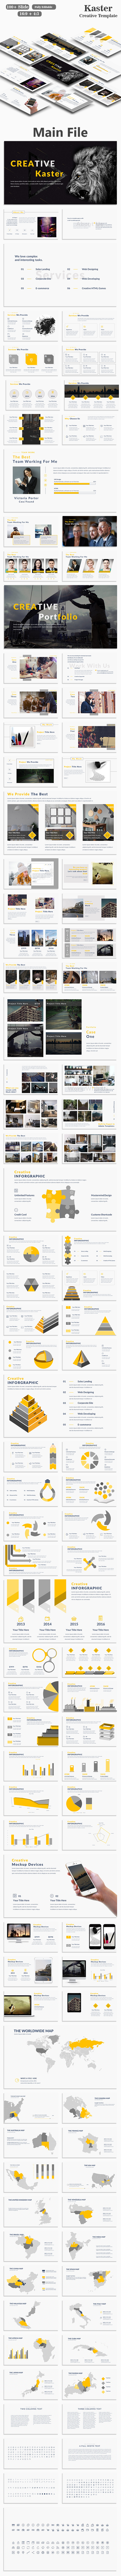 Kaster Creative Google Slide Template - Google Slides Presentation Templates